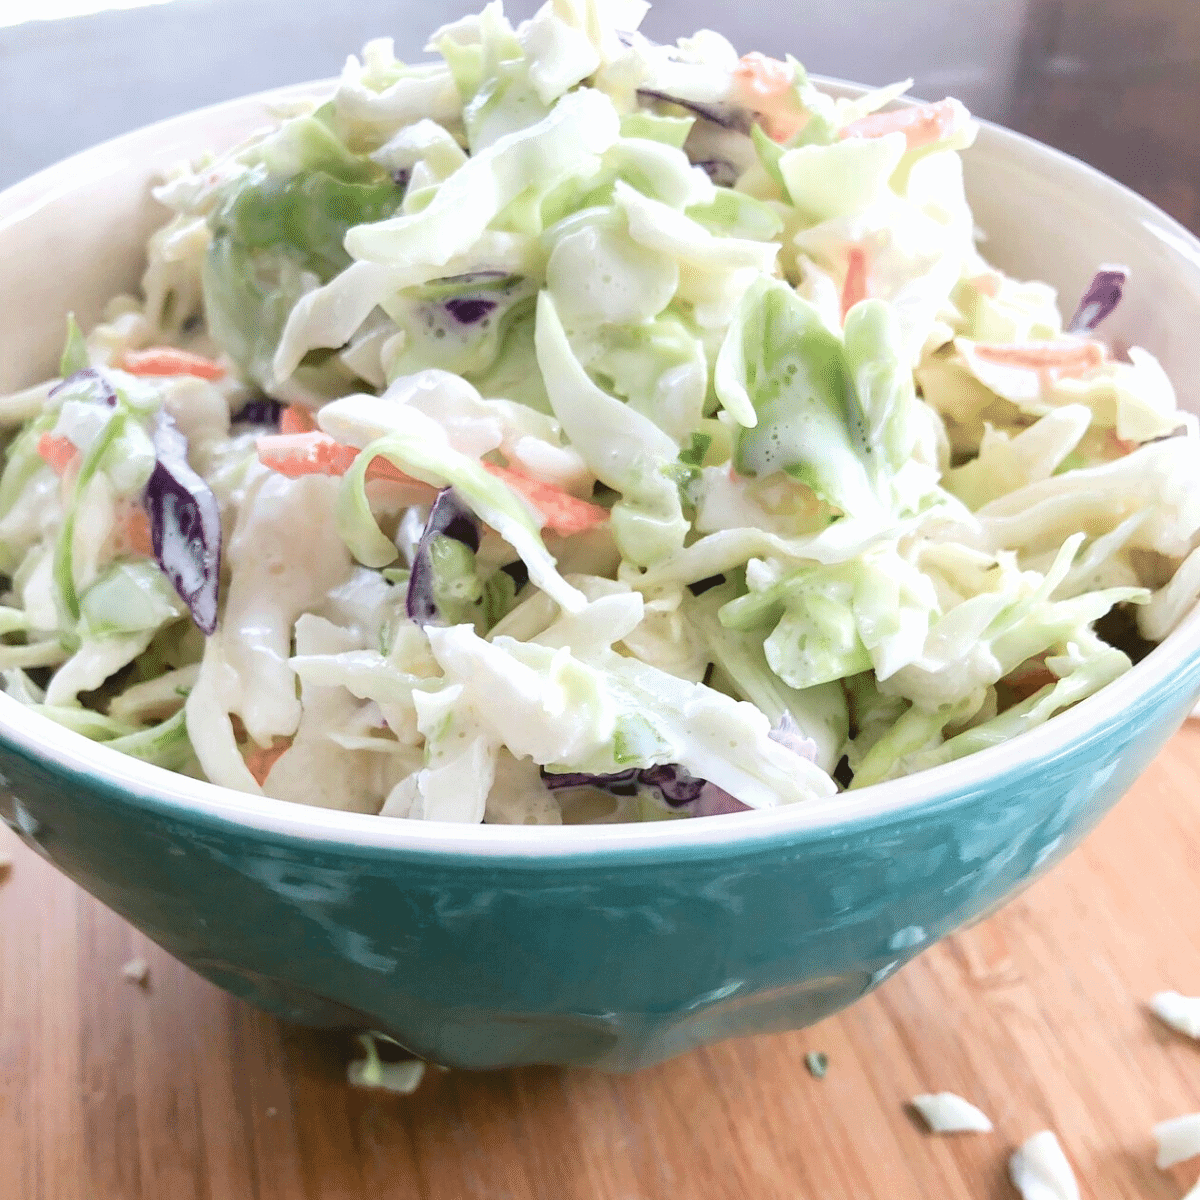 Creamy coleslaw in a blue bowl